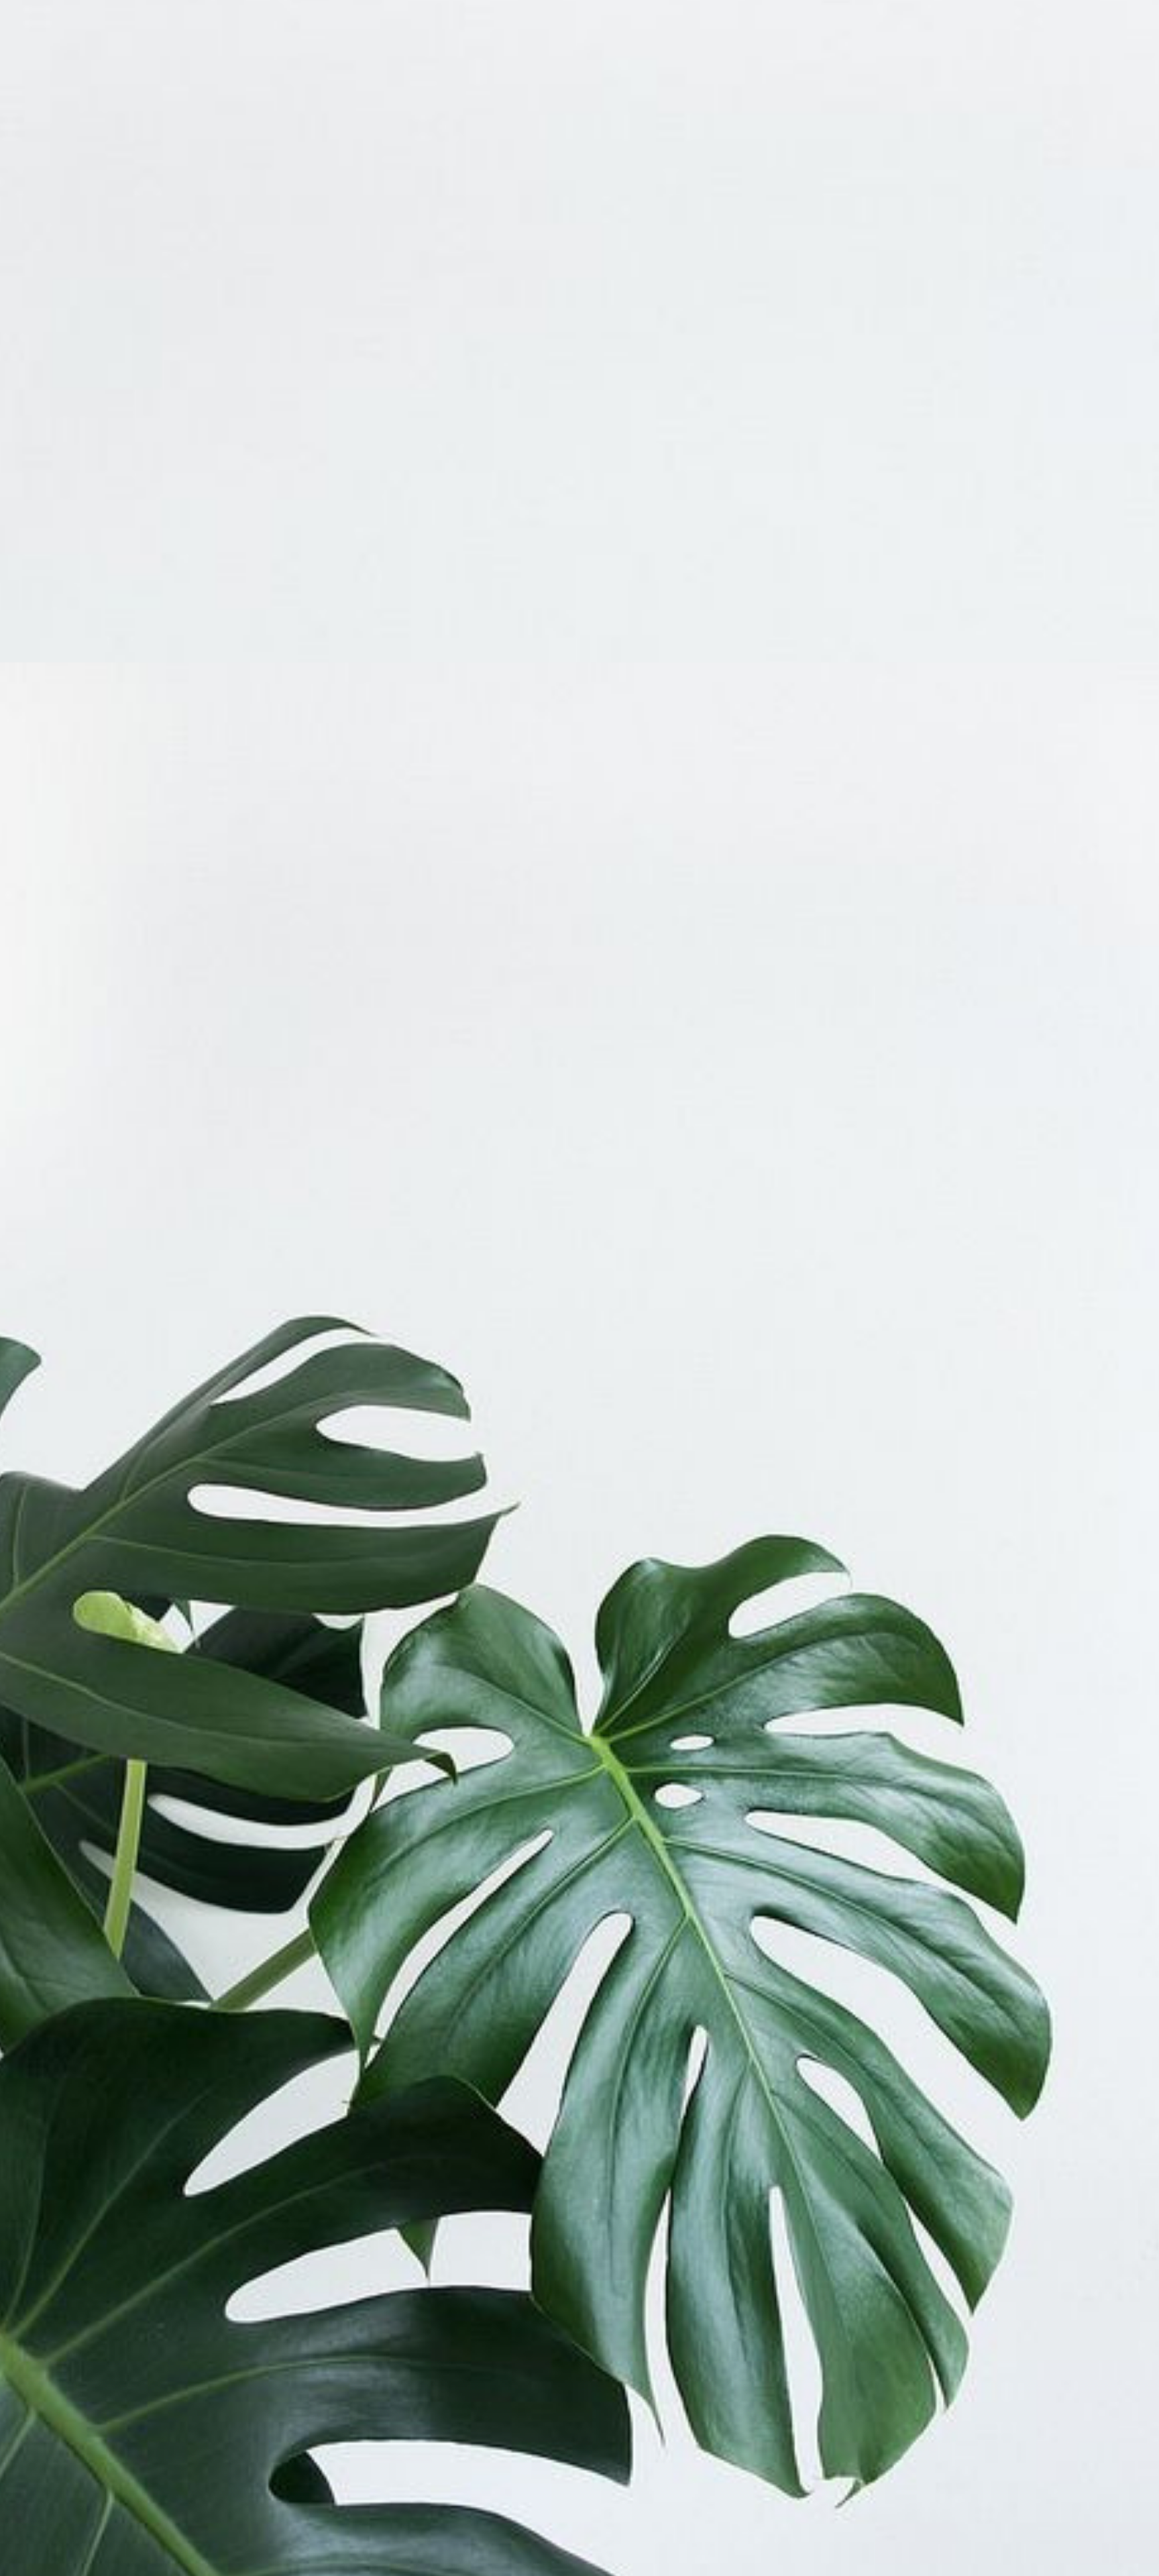 plant aesthetic hd wallpapers